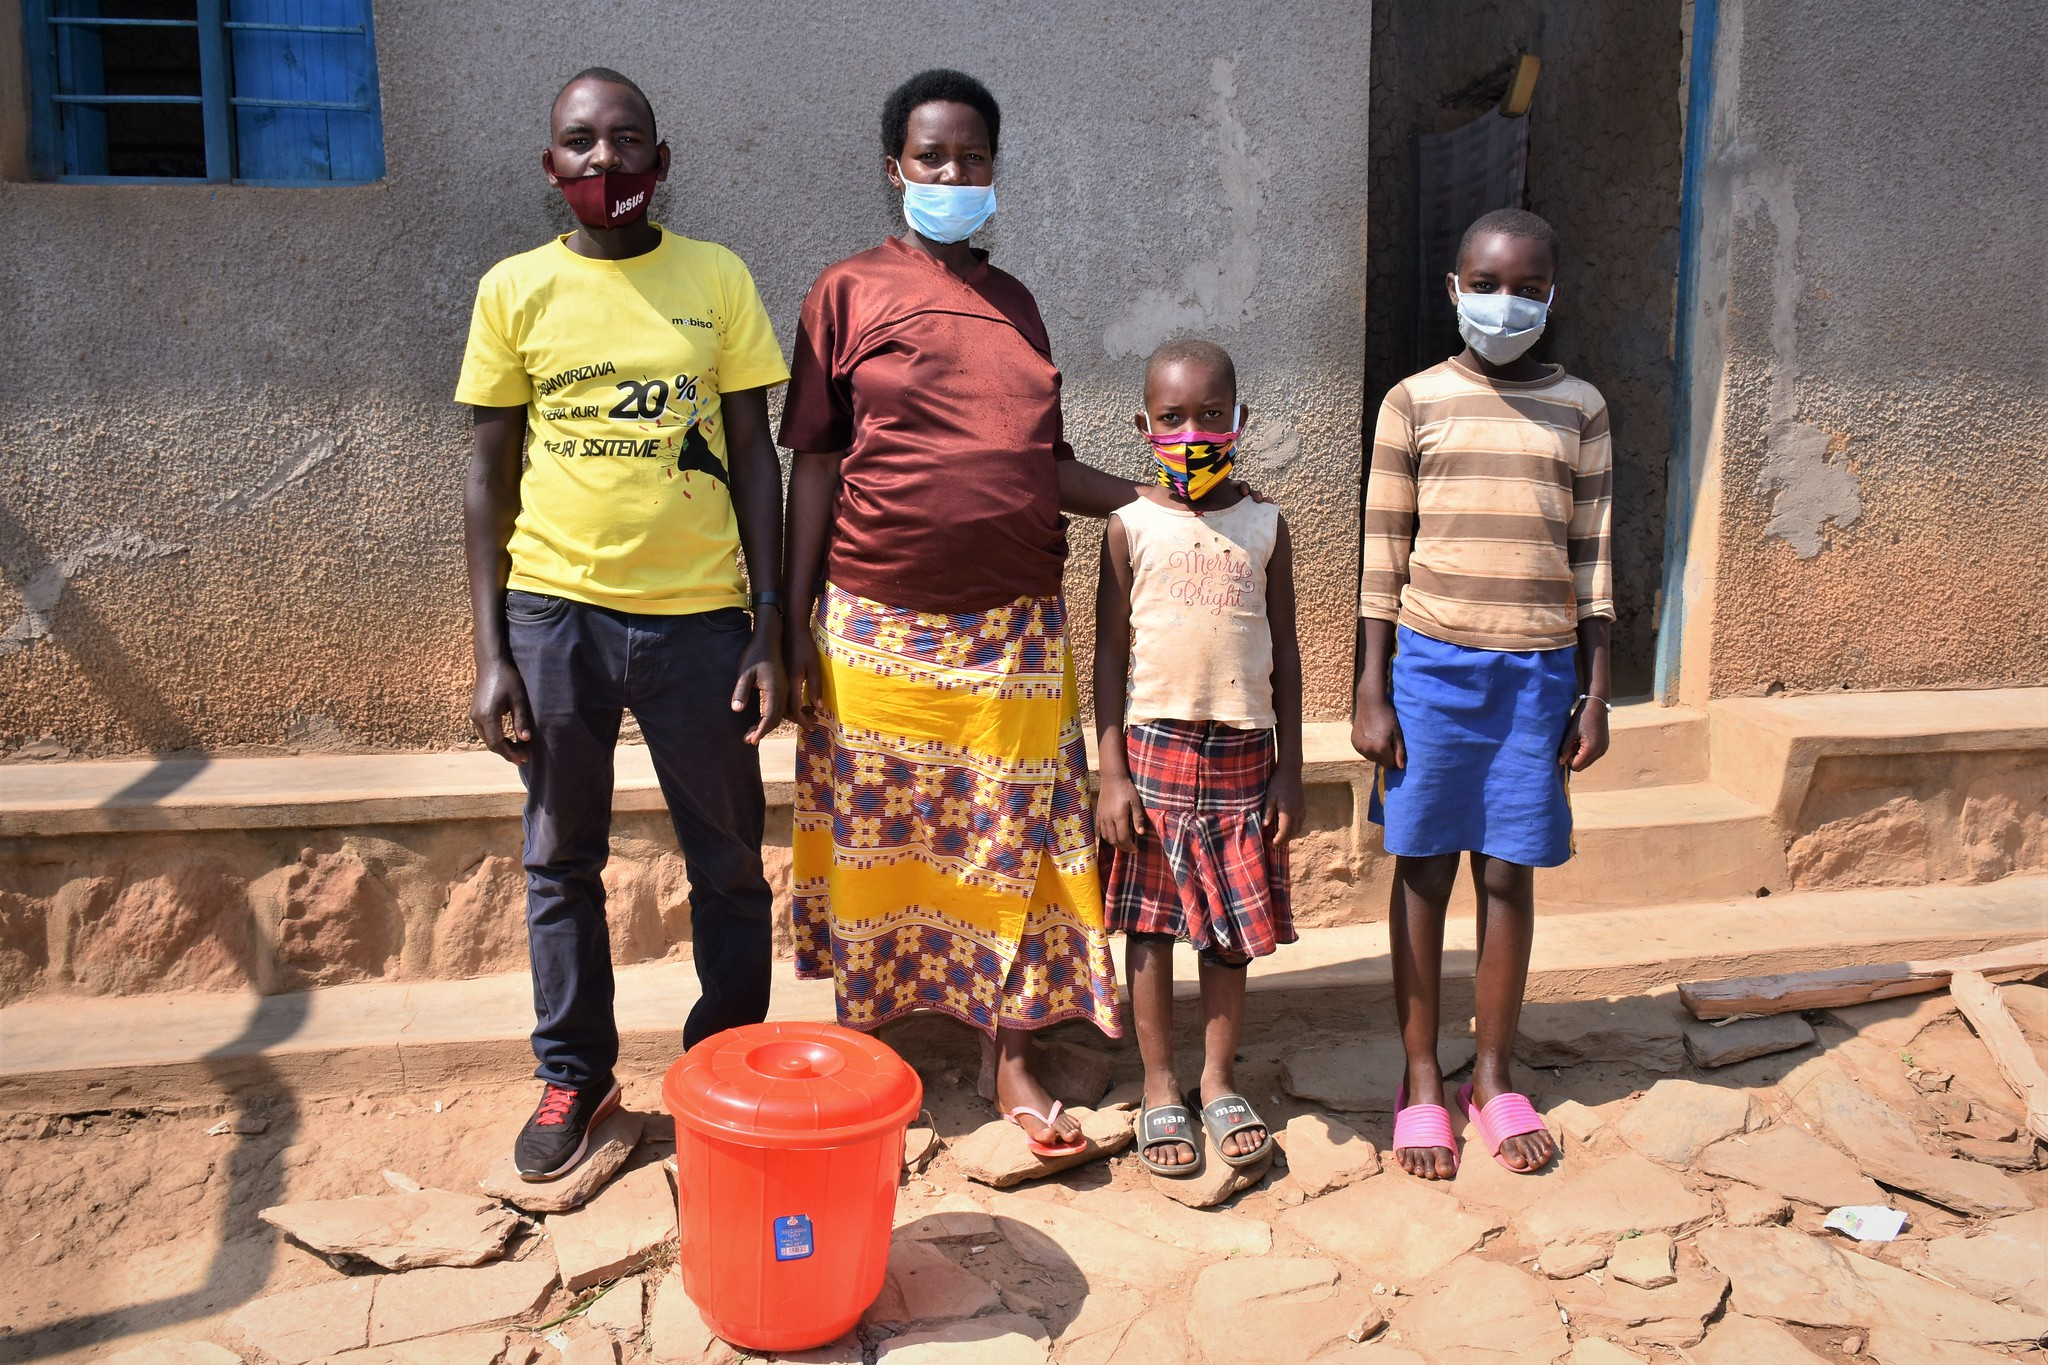 Trócaire helps families like Janvier and Sandrine's who are in need of emergency support in Rwanda